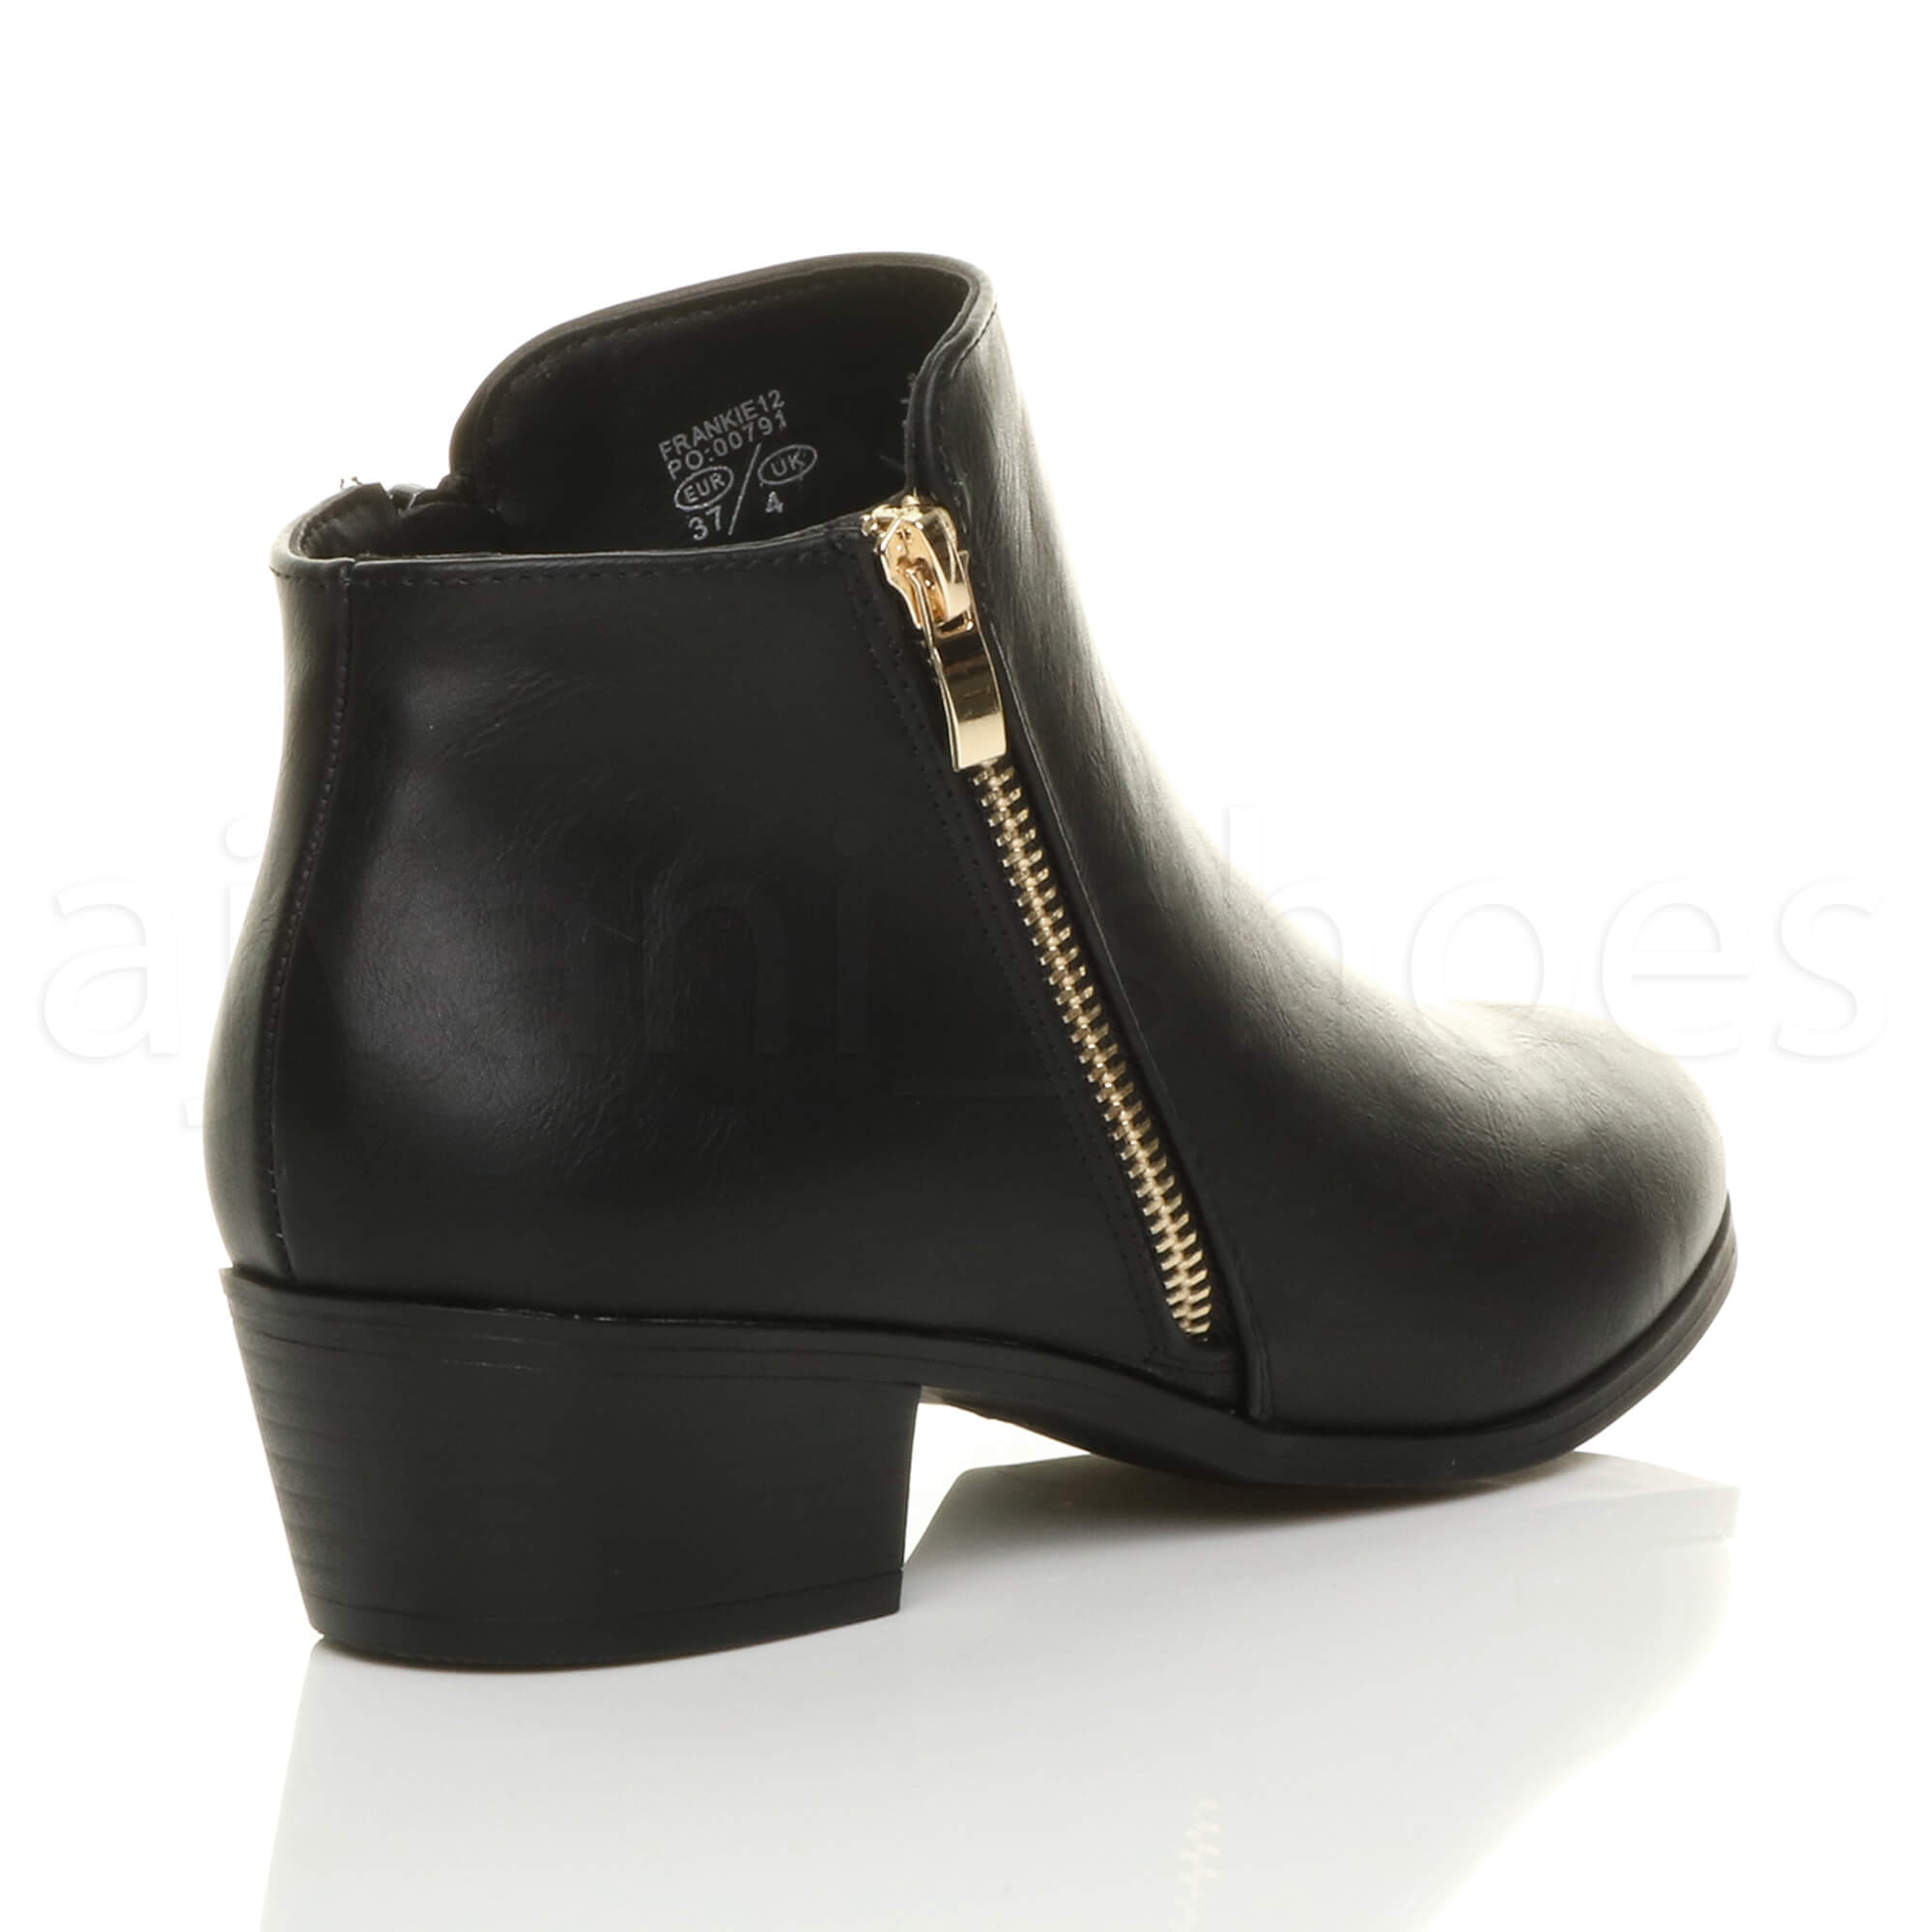 WOMENS-LADIES-LOW-MID-CUBAN-HEEL-GOLD-ZIP-SMART-WESTERN-PIXIE-ANKLE-BOOTS-SIZE